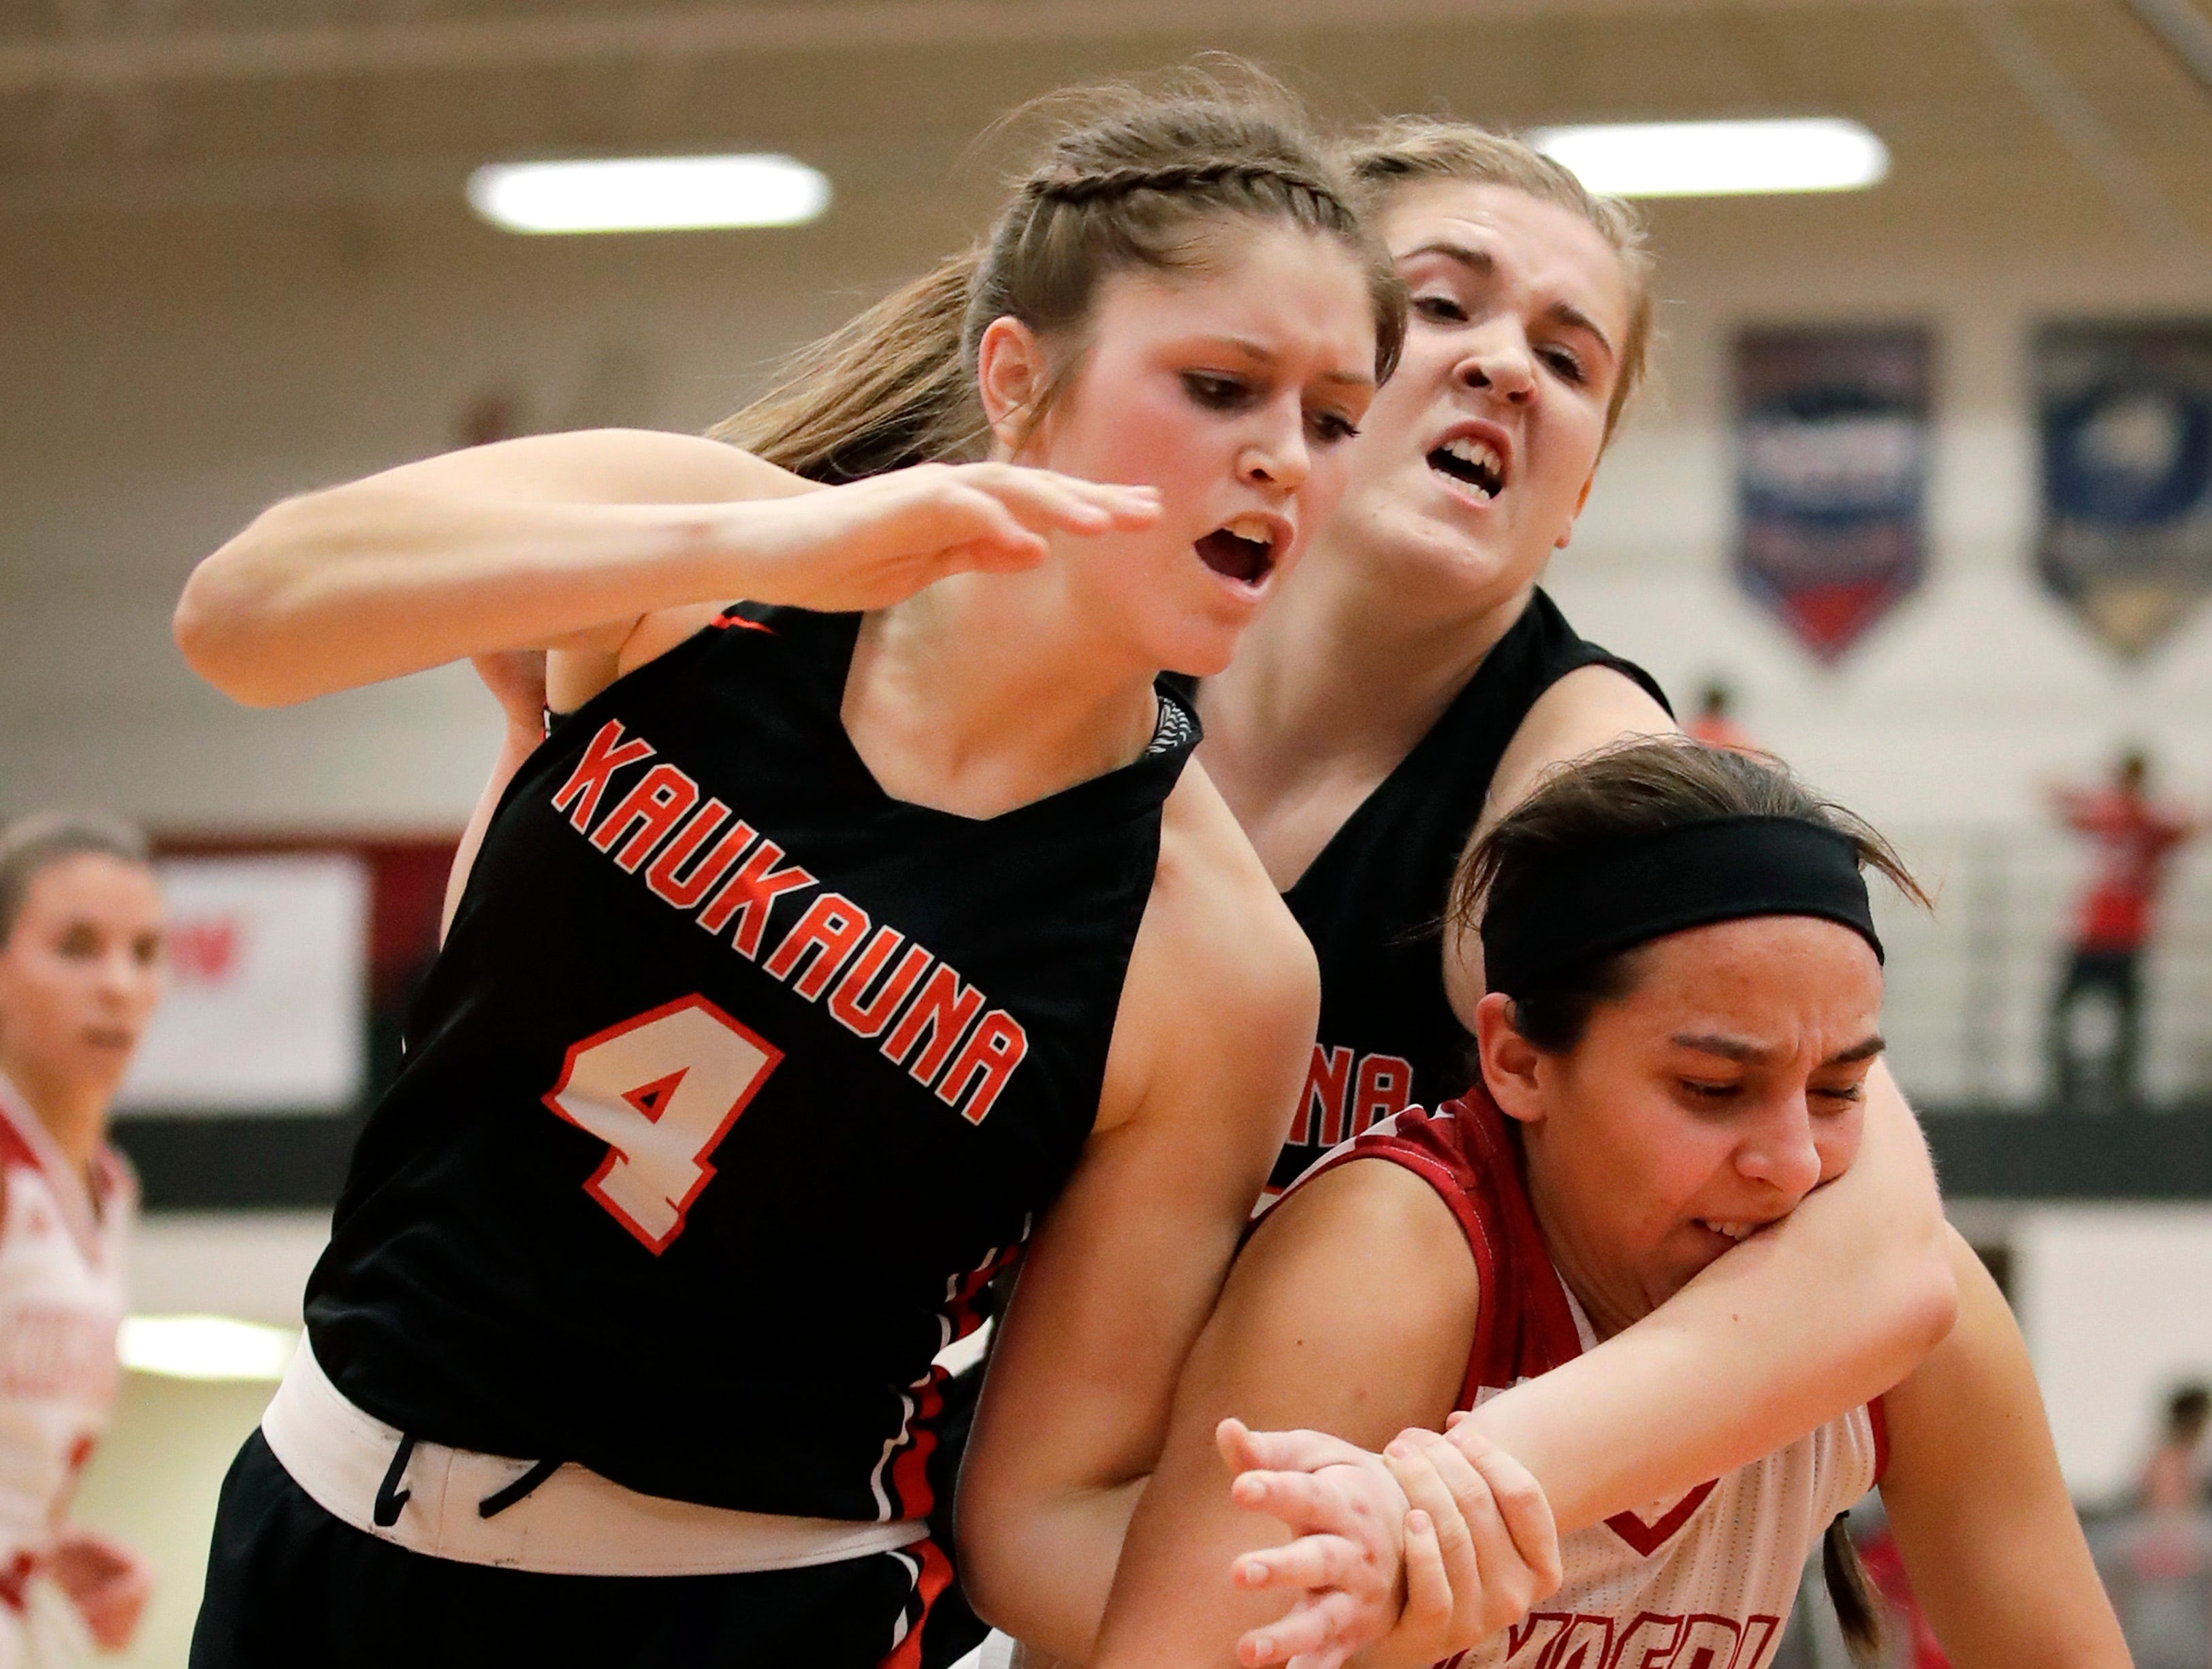 Kaukauna High School's Graysin Hinkens and Madison Herdina get tangled with Kimberly High School's Shea Dechant while going for a rebound Friday, Dec. 7, 2018, in Kimberly, Wis. Kimberly High School defeated Kaukauna High School 70-55.